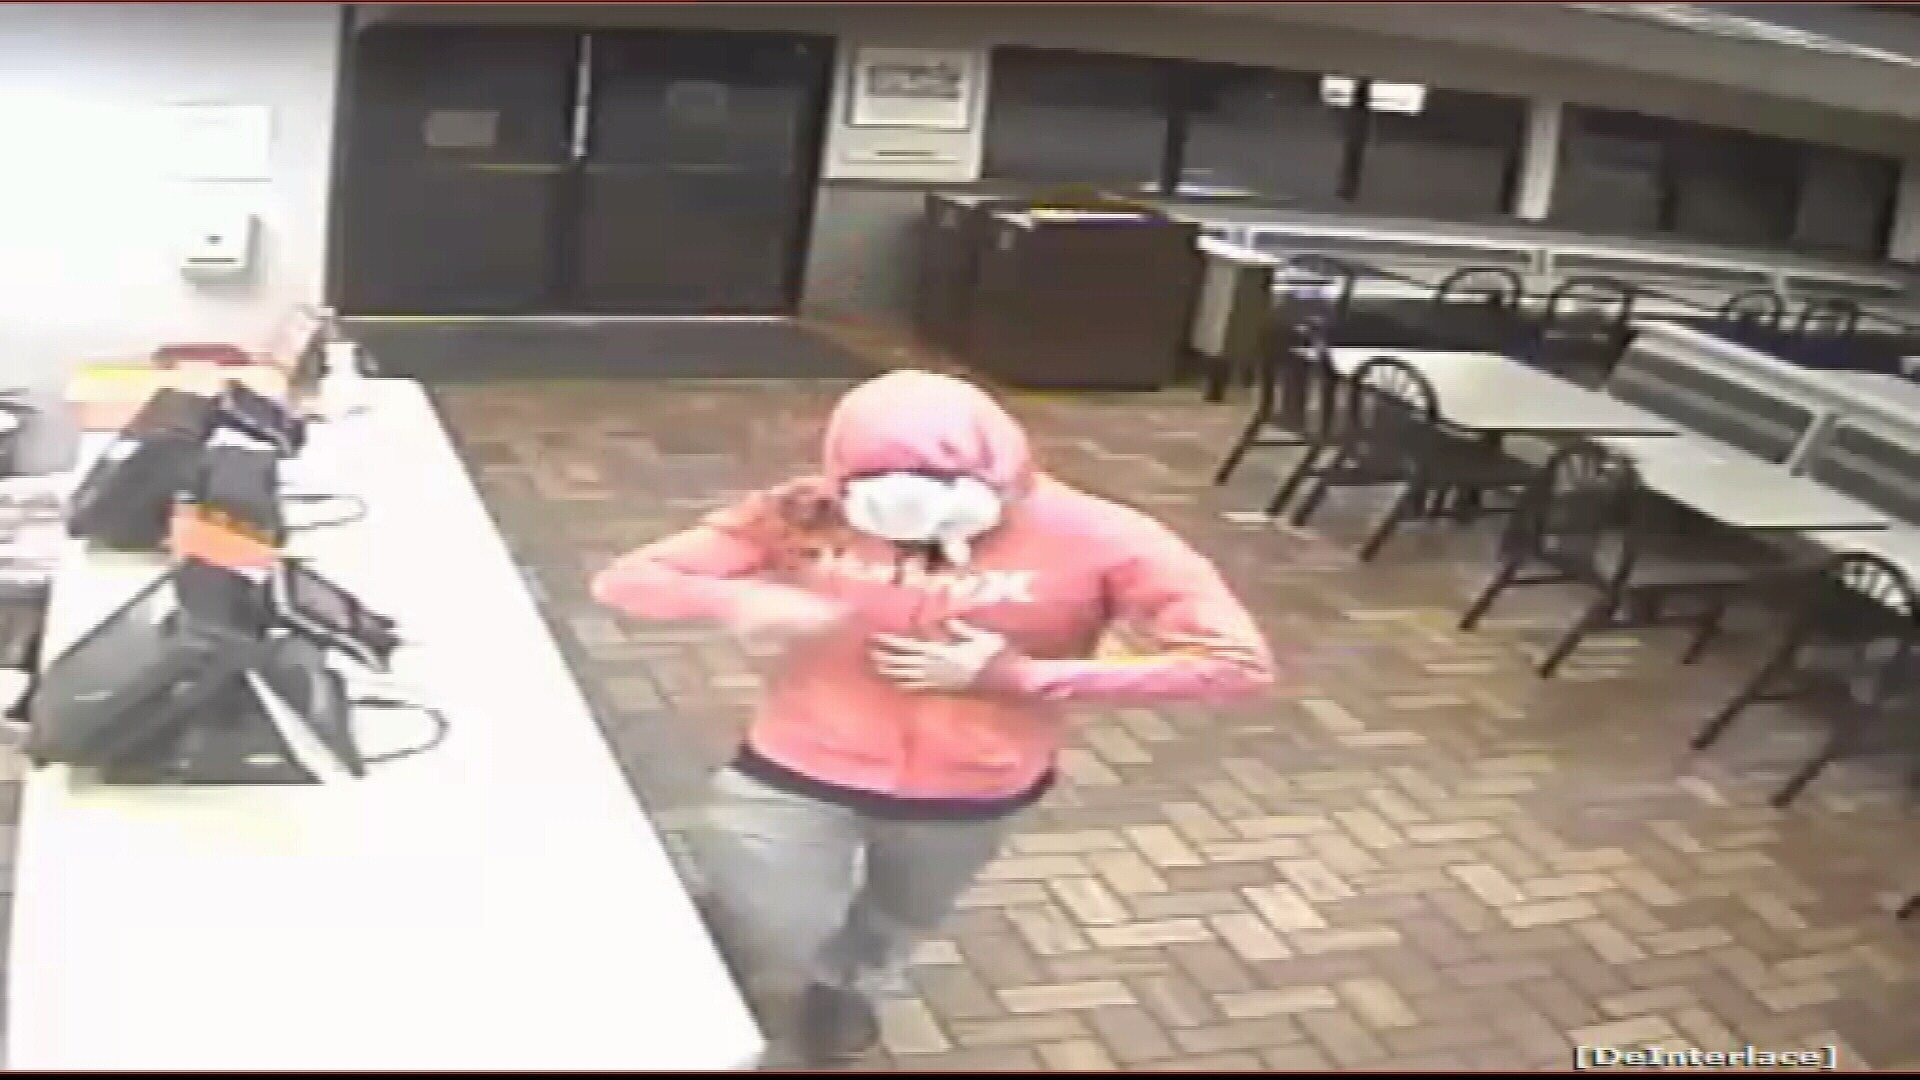 If you recognize this man, call Crime Stoppers at 888-TIPS.